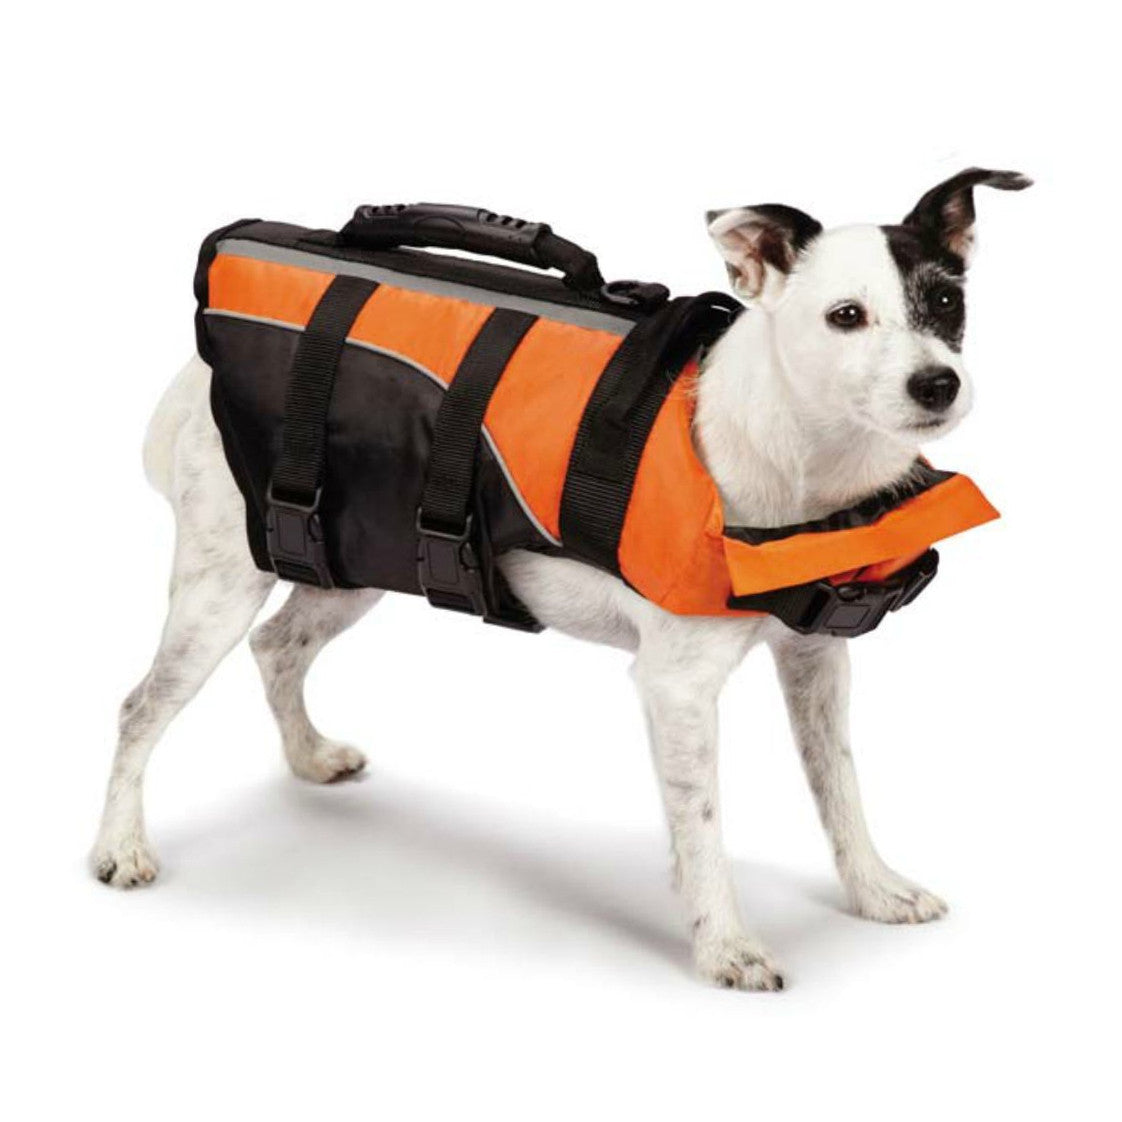 Extra Extra Small Dog Life Jacket